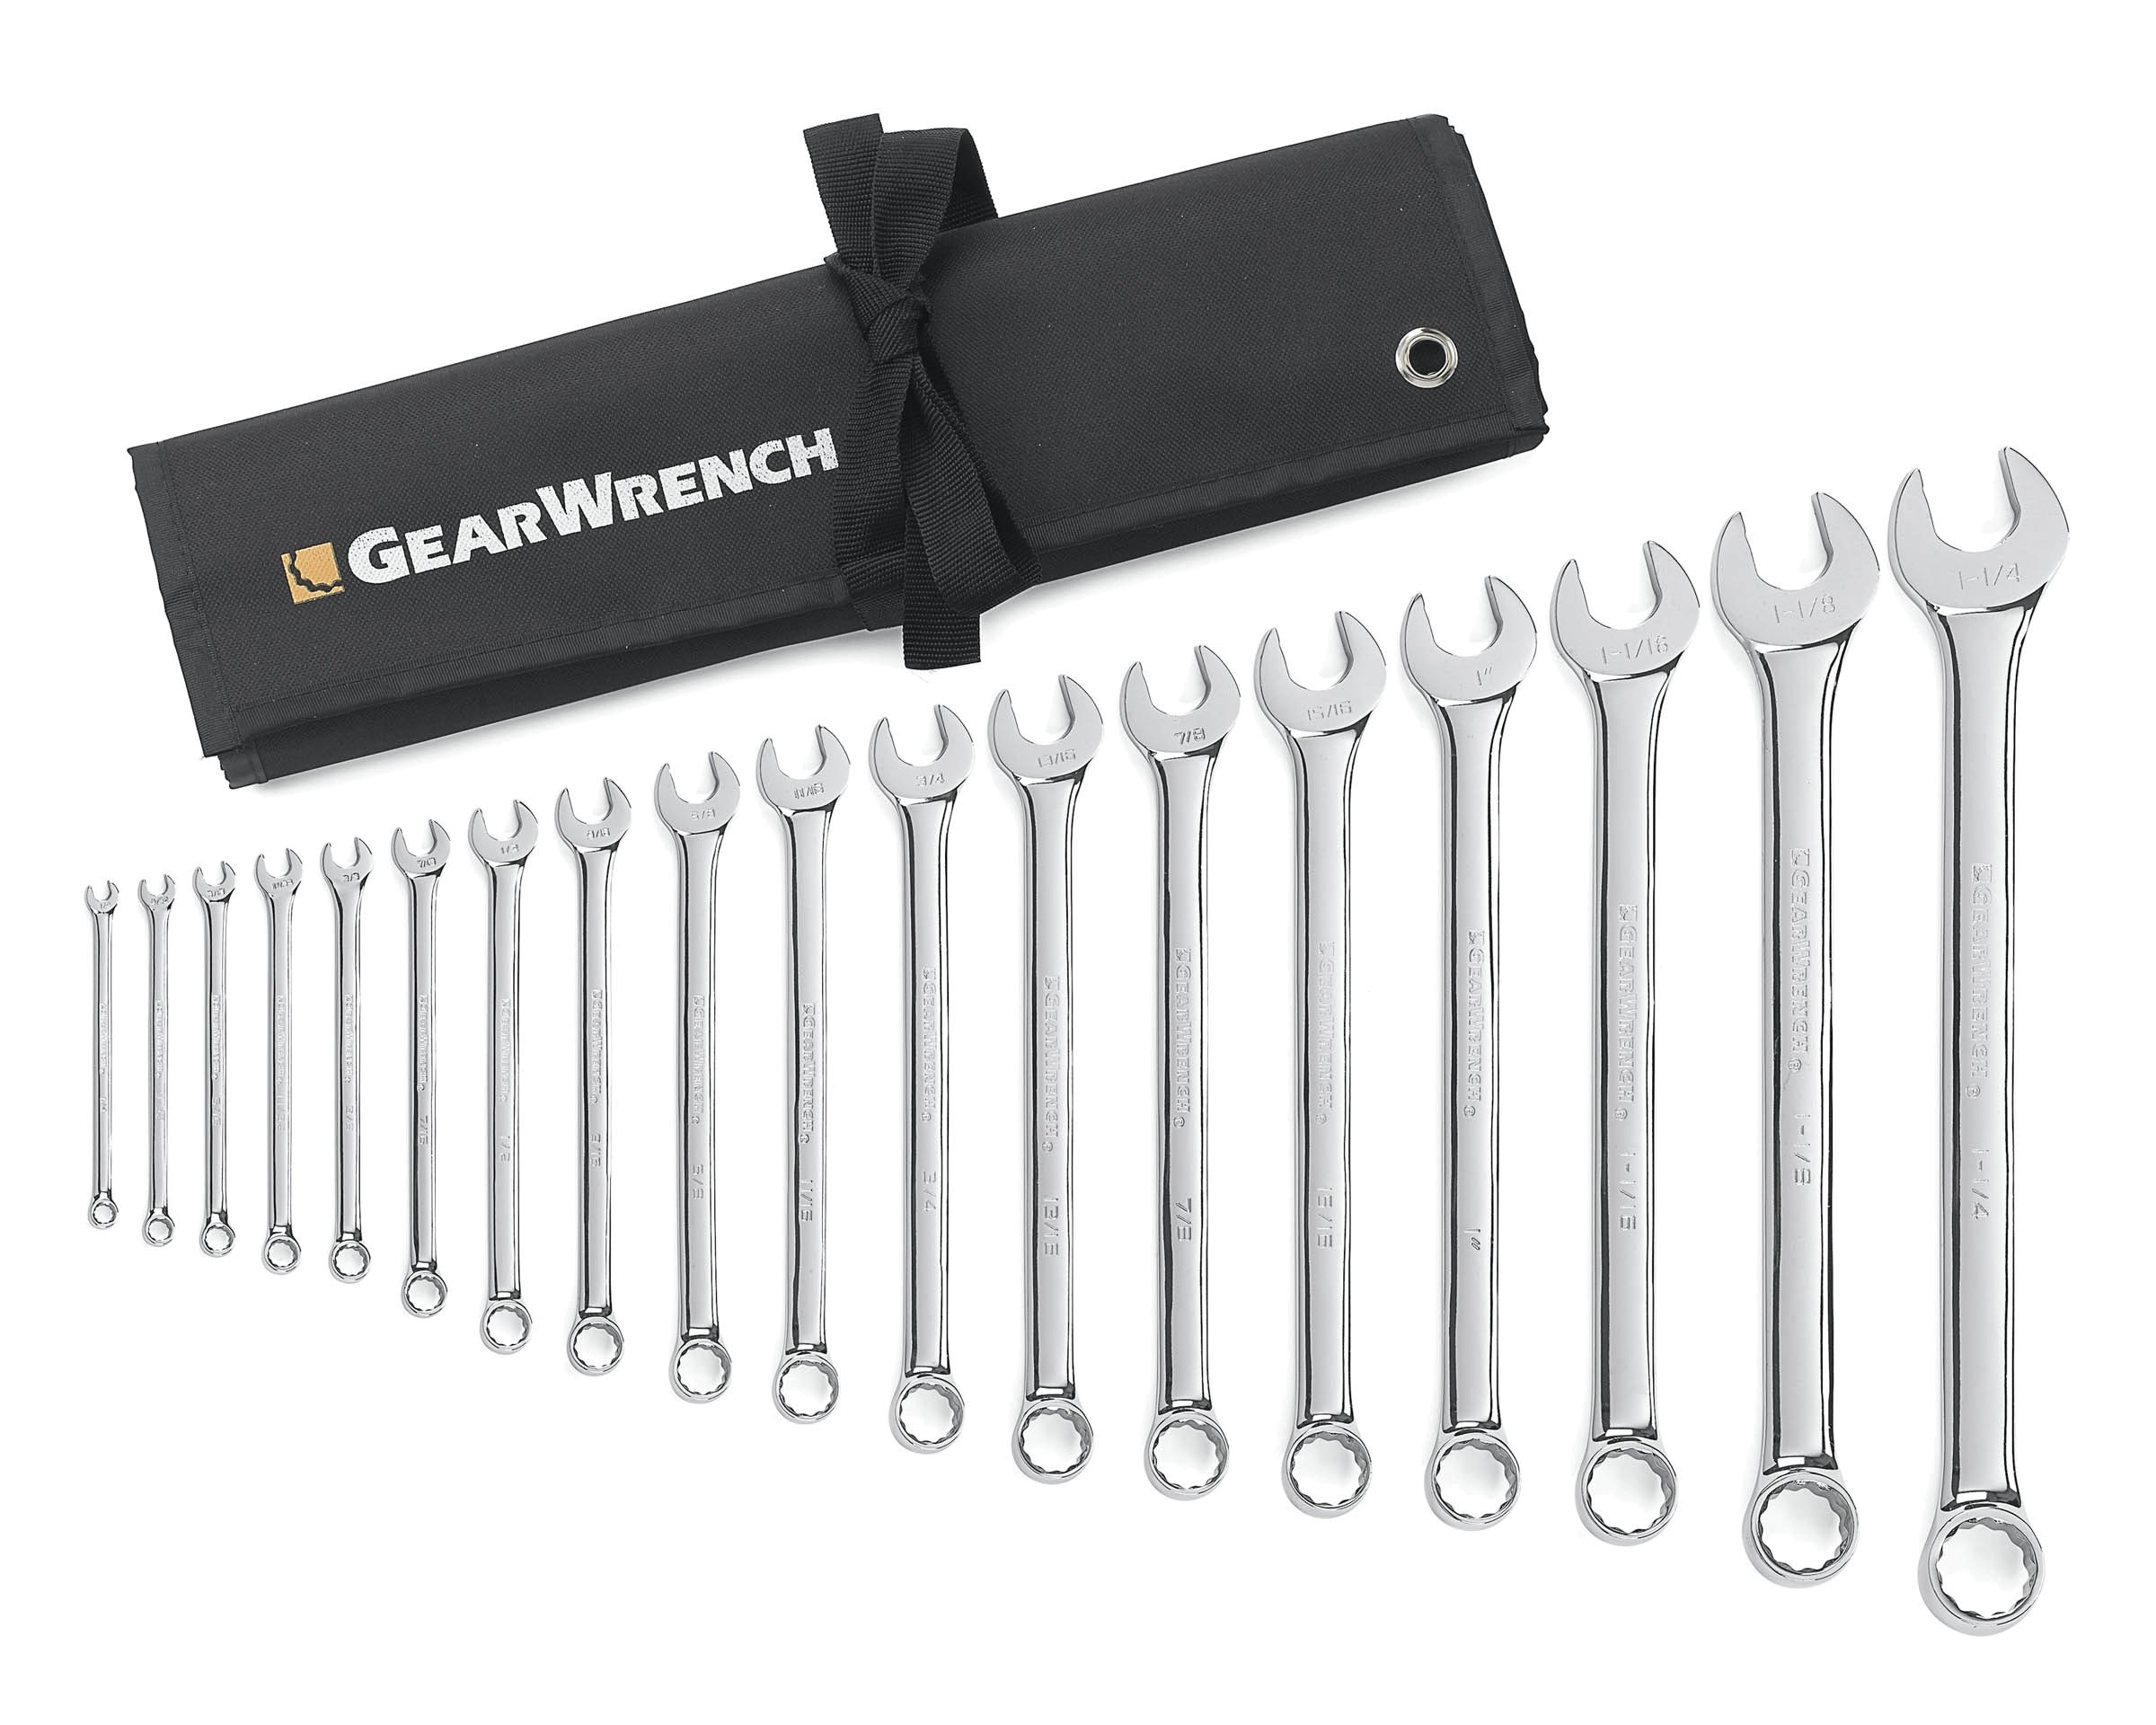 GEARWRENCH 18 Pc. 12 Point Long Pattern Combination SAE Wrench Set - 81917 by GearWrench